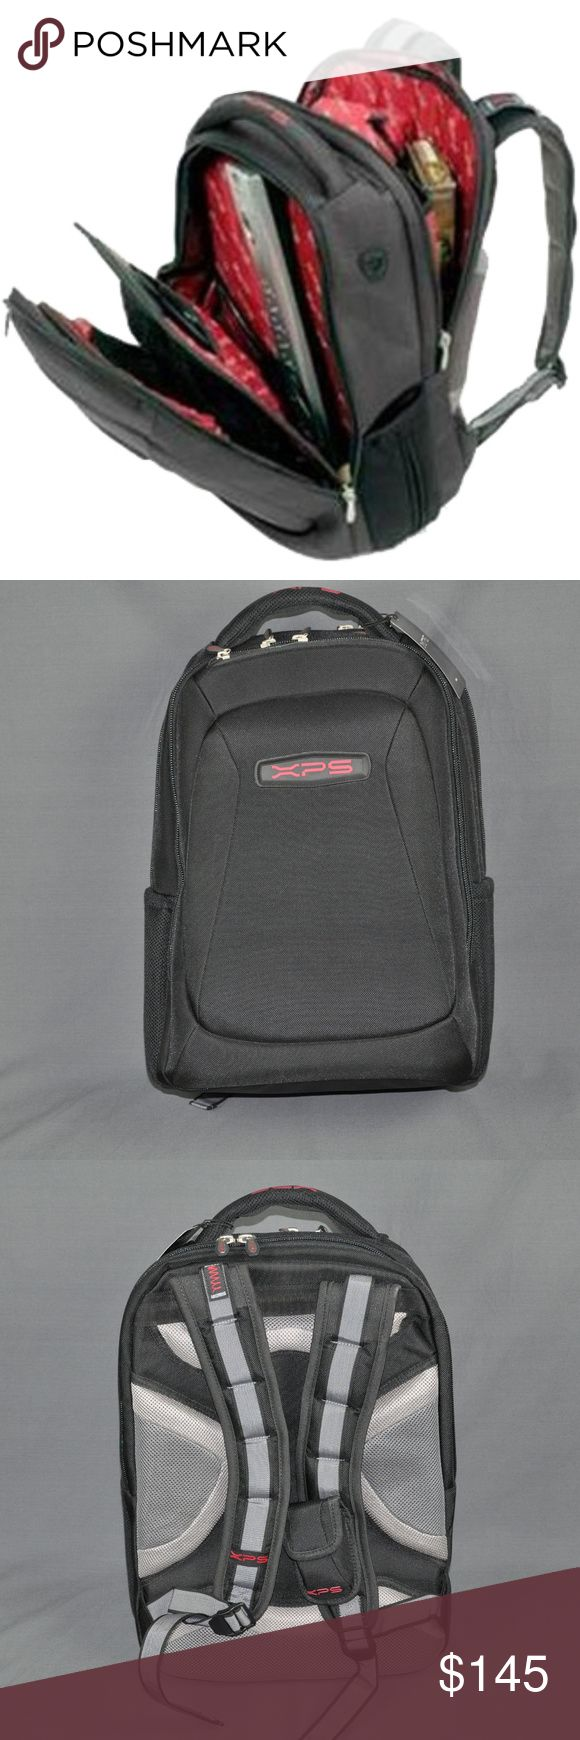 """NWT DELL XPS M1730 17"""" Gaming Laptop Backpack brand new, tag still attached and still in plastic. Made exclusively for DELL. accommodate up to a 17"""" laptop.   Details: shock absorbing shoulder straps, drop protection system, keyboard pocket with elements protection, removable gear storage, removable cd holder & cell phone case, air flow back padding, quick access port, case base stabilizer platform.      Part #JN570  Smoke free pet friendly home. Dell Bags Laptop Bags"""